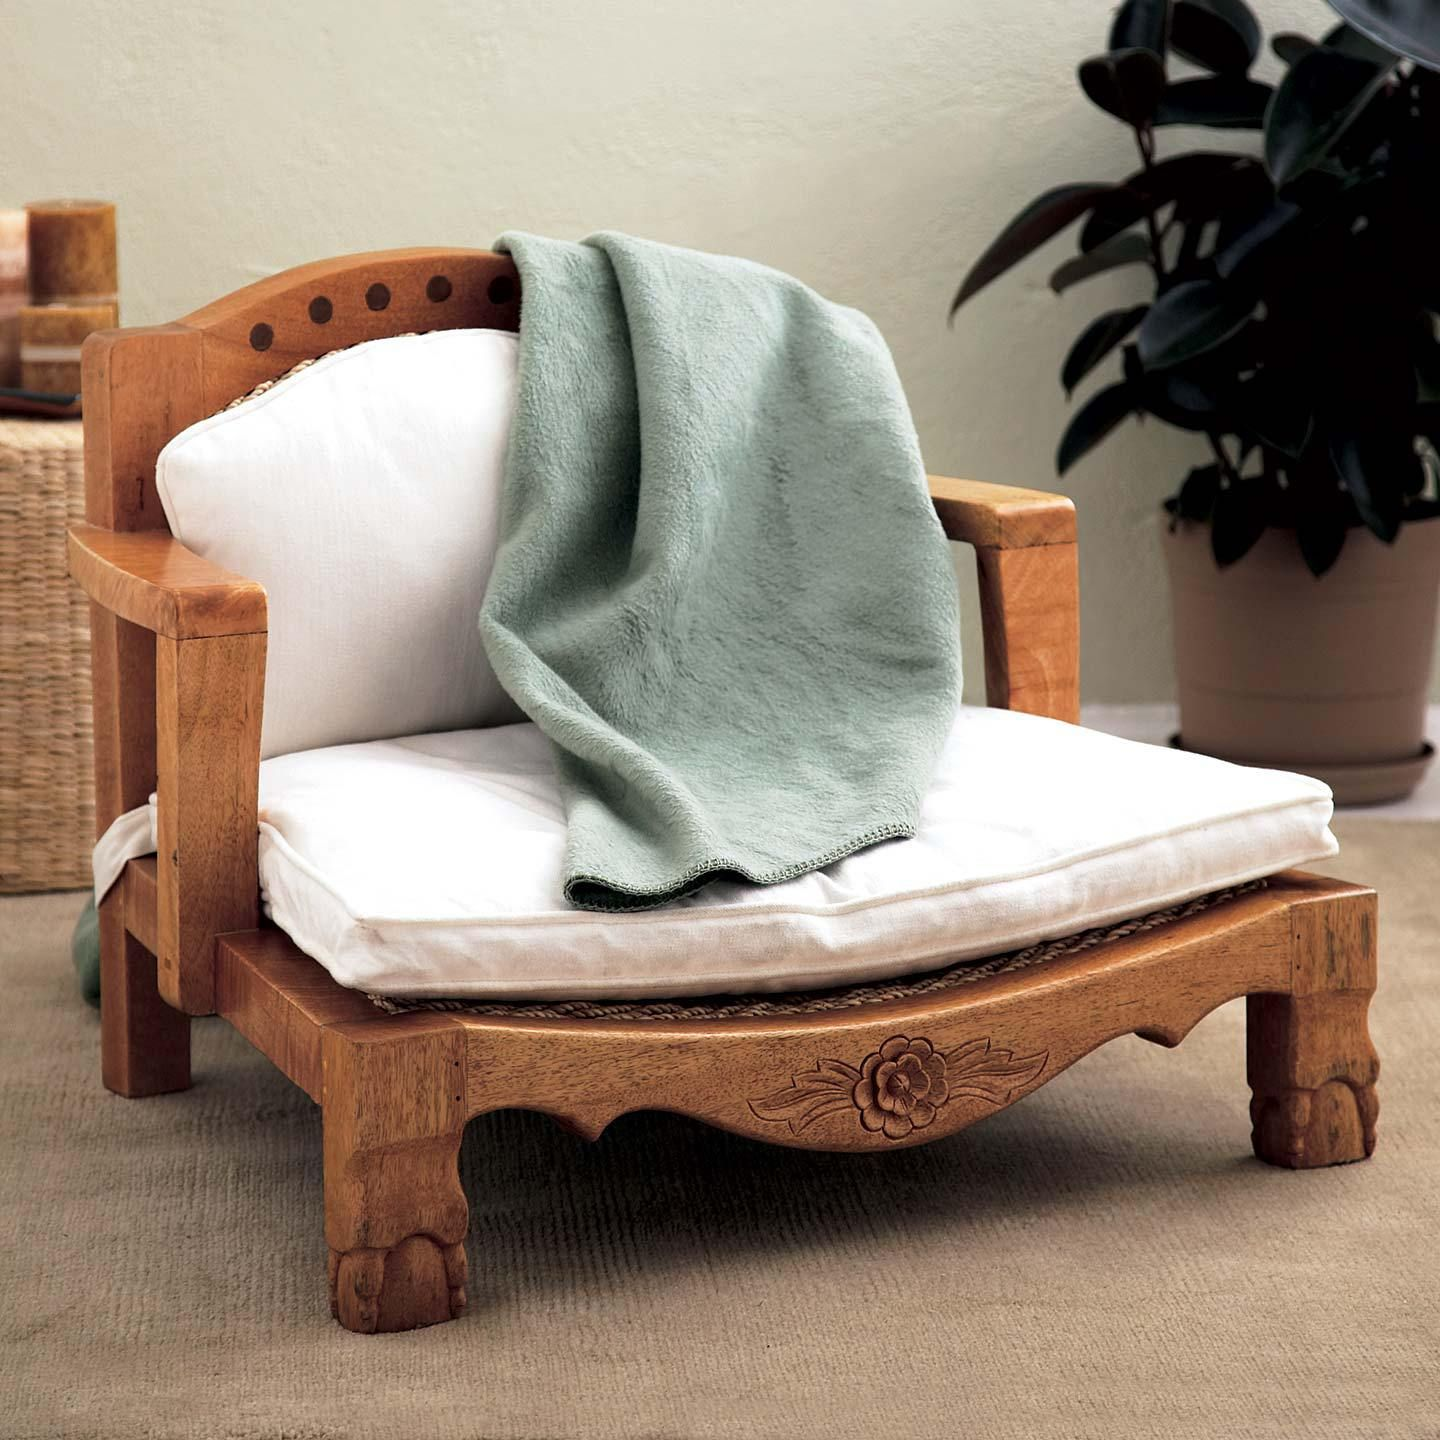 Crafted from banana leaves and mango wood Chair is kiln-dried and protected with a natural water-based finish Shorter-styled armrests provide comfort in any sitting position Perfect seat for cross-…